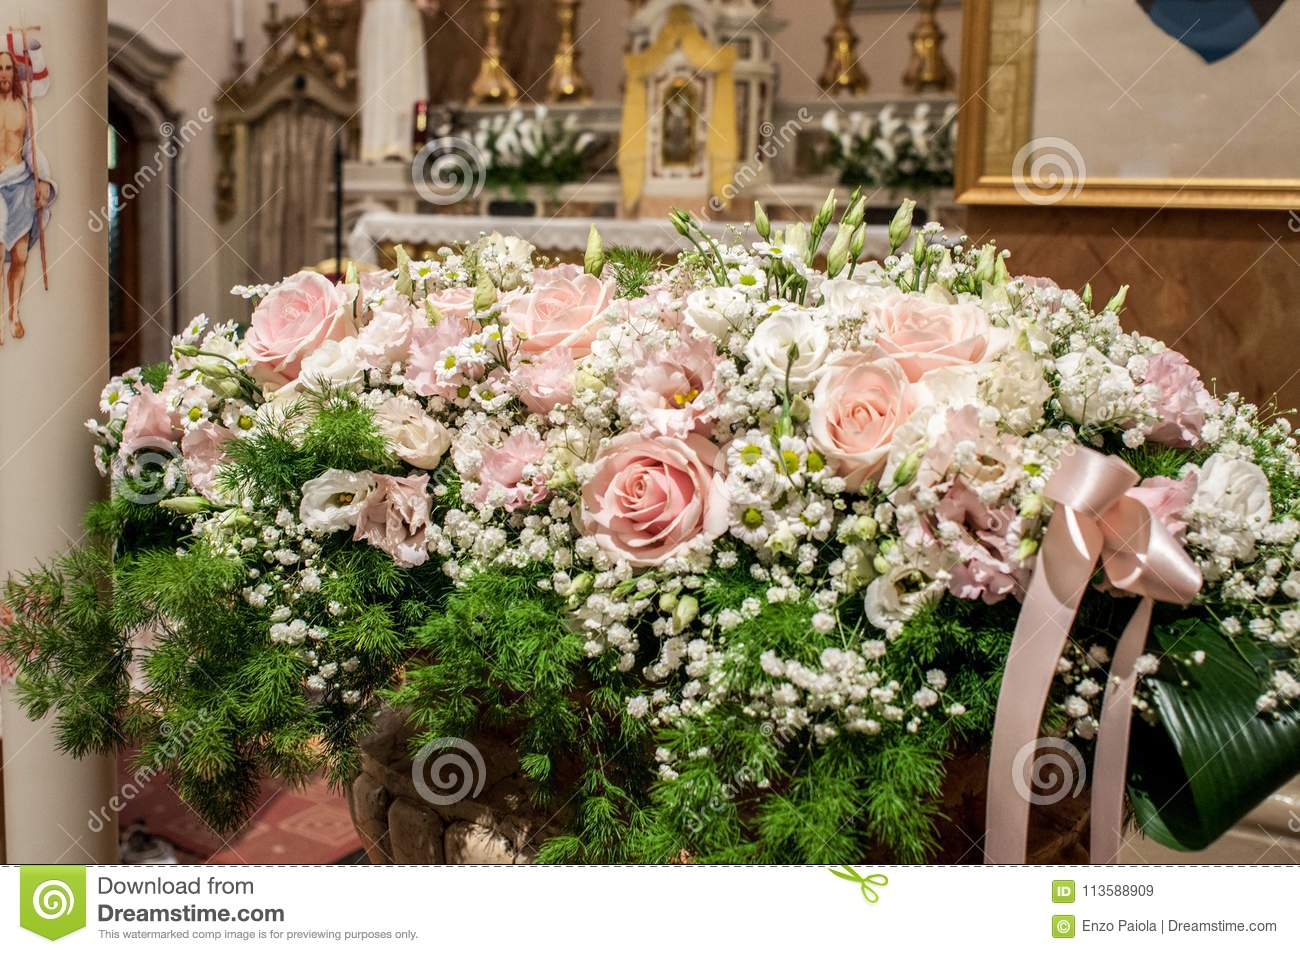 Floral decorations at the wedding ceremony stock image image of assorted ideas for florals used in the wedding ceremony either inside floral arrangements flower arrangements and wedding bouquets izmirmasajfo